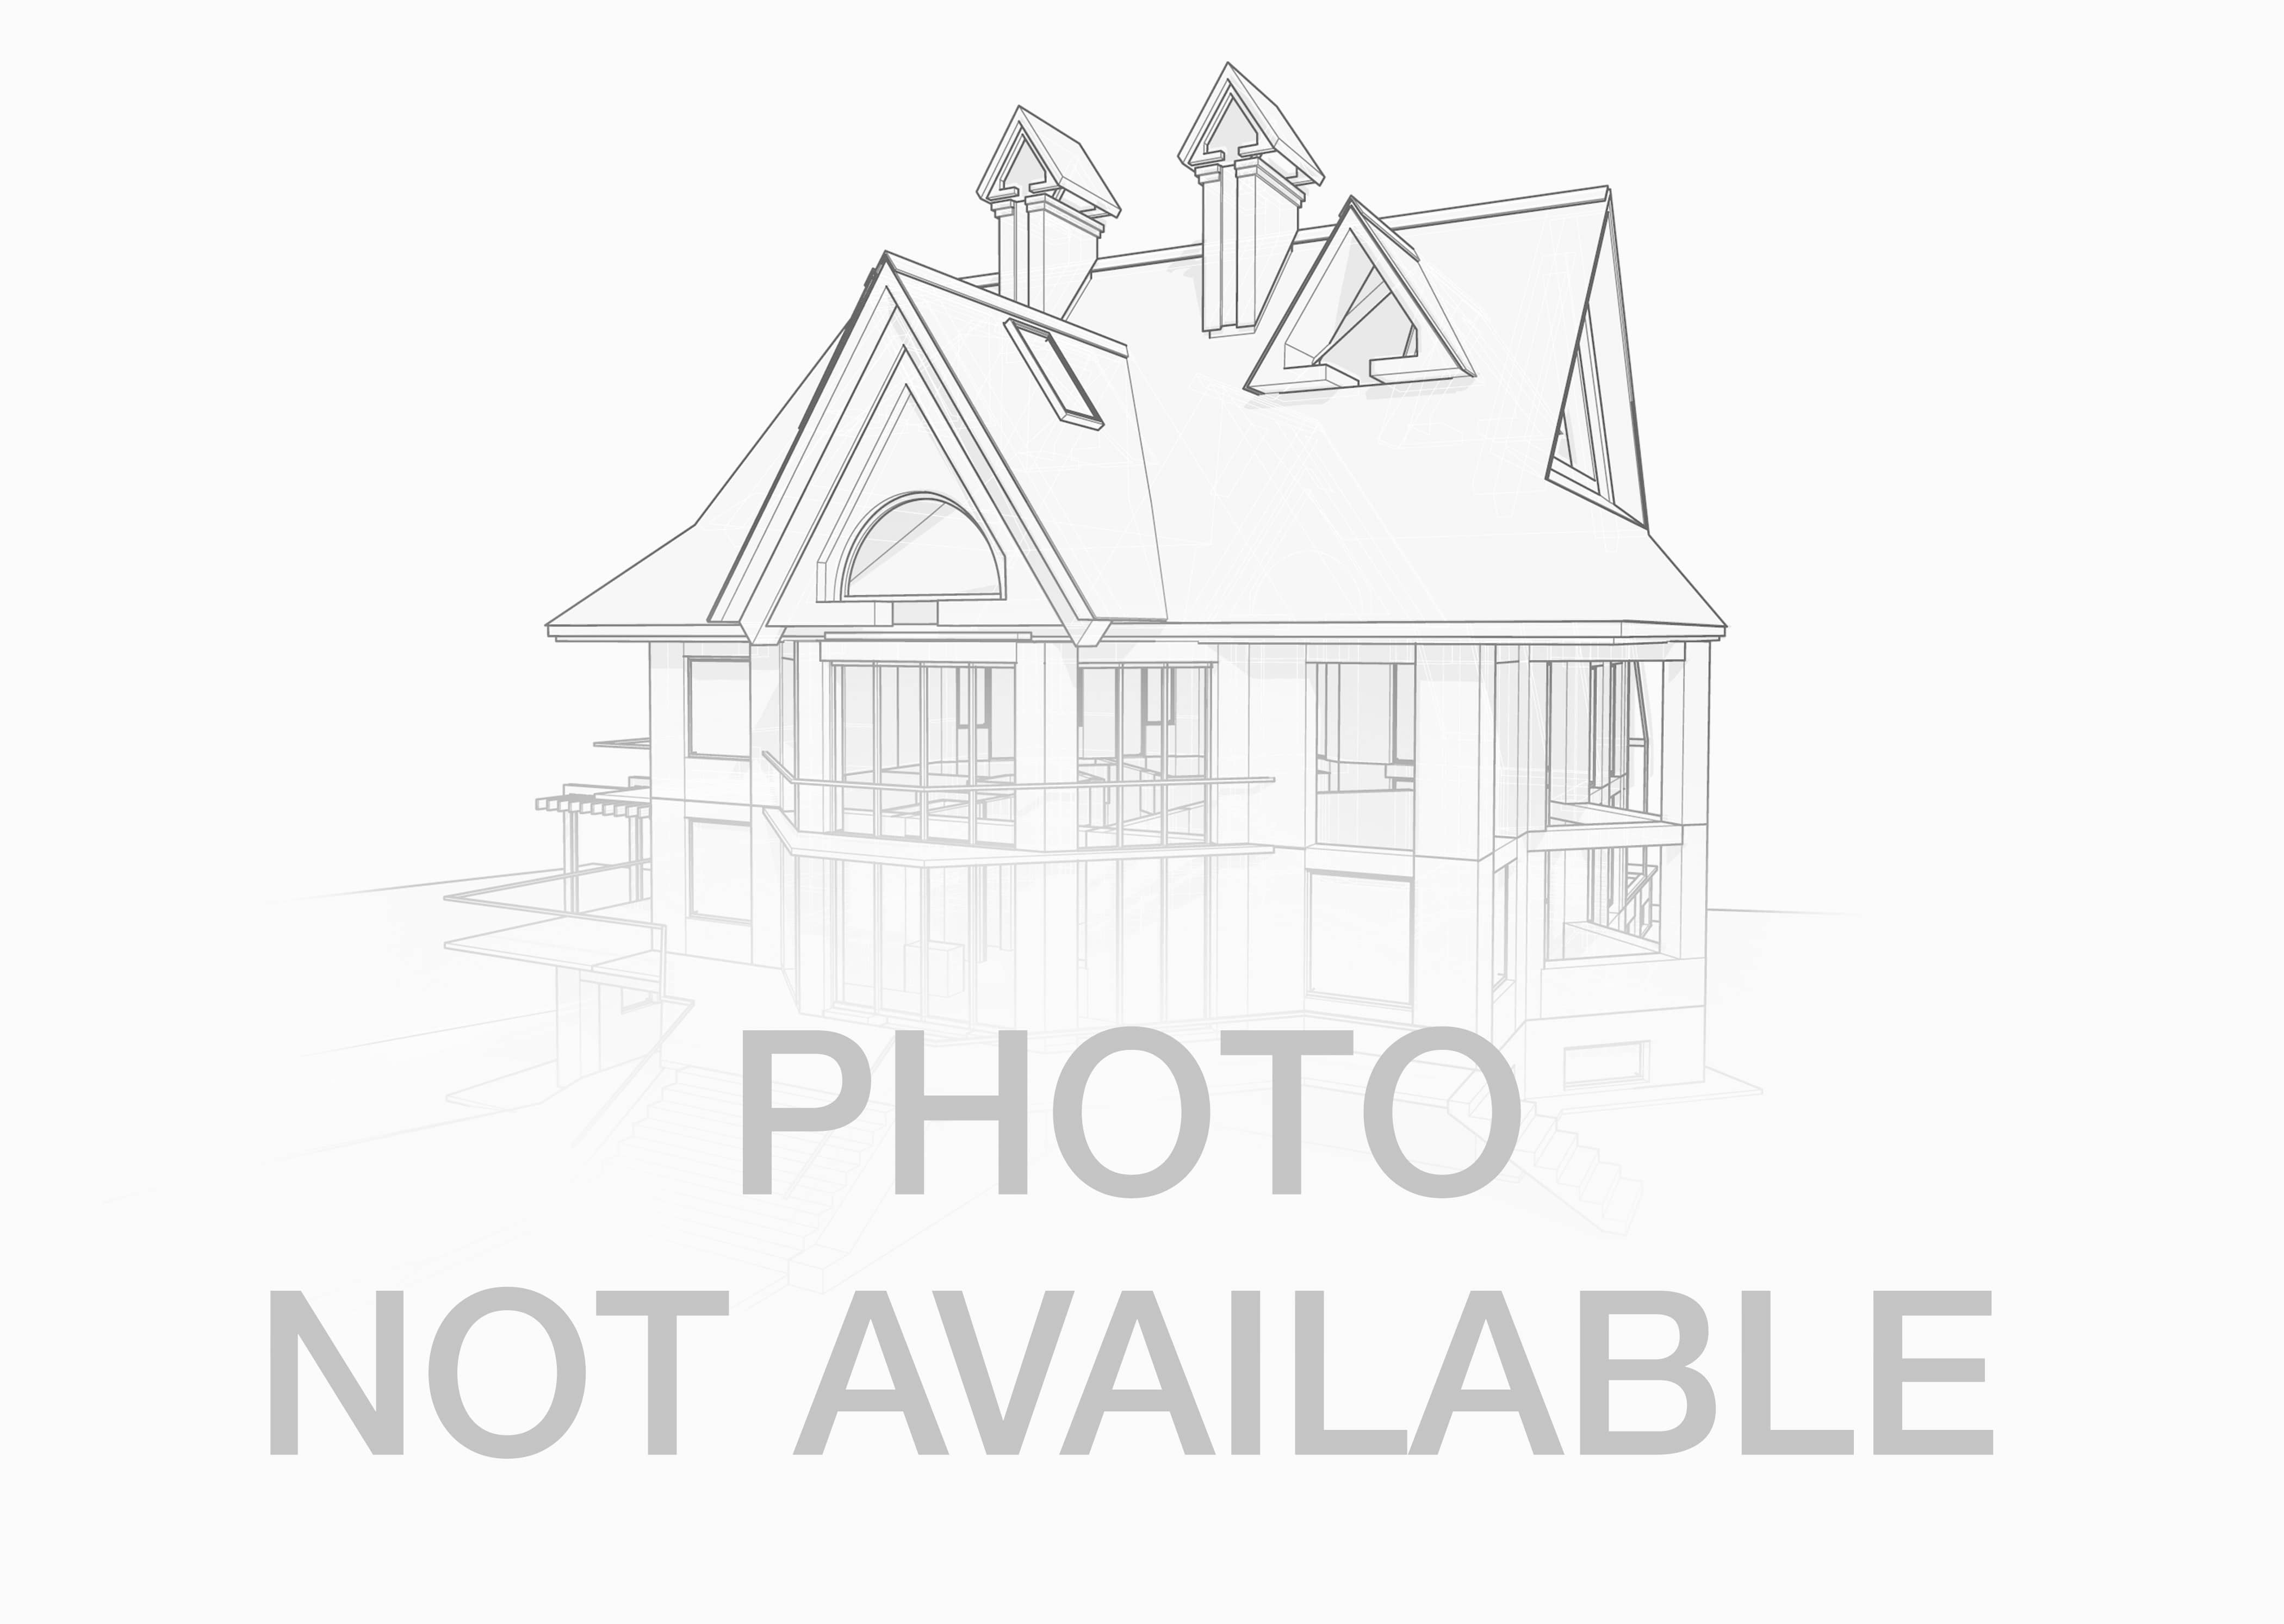 Primary Property Photo For 1405 Willow Alley, Unit 333